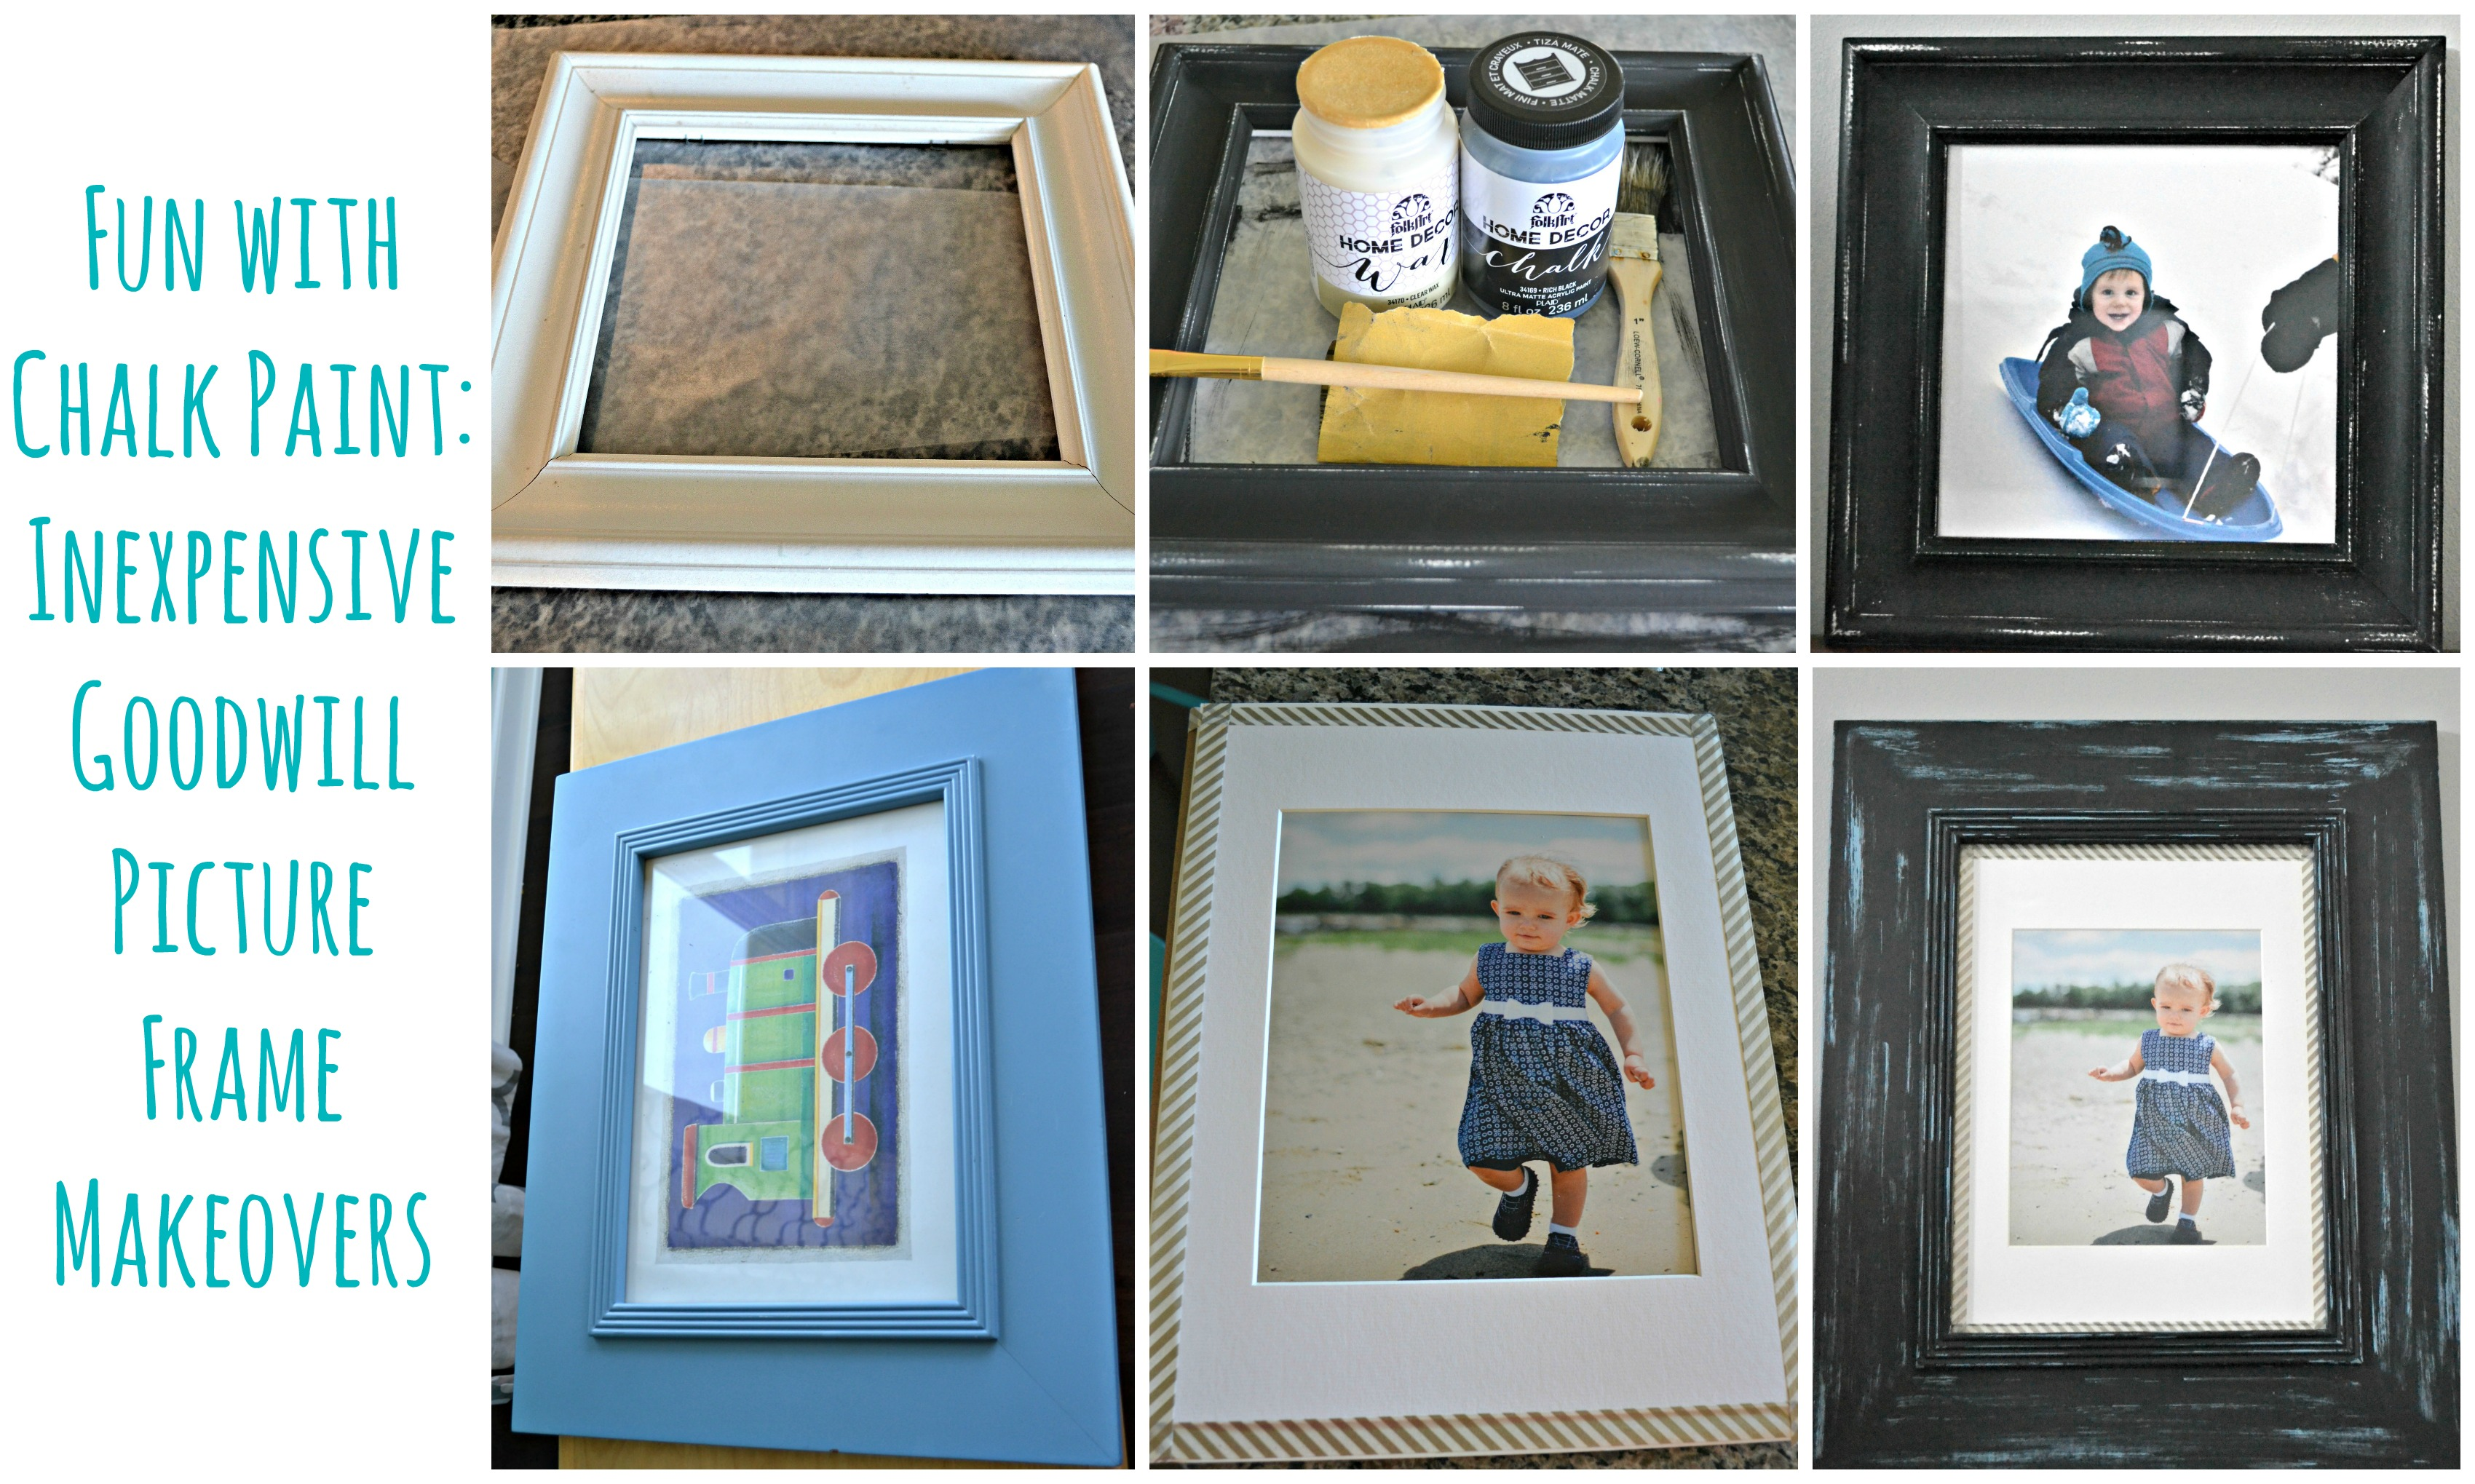 Fun with Chalk Paint - Inexpensive Goodwill Picture Frame Makeovers ...